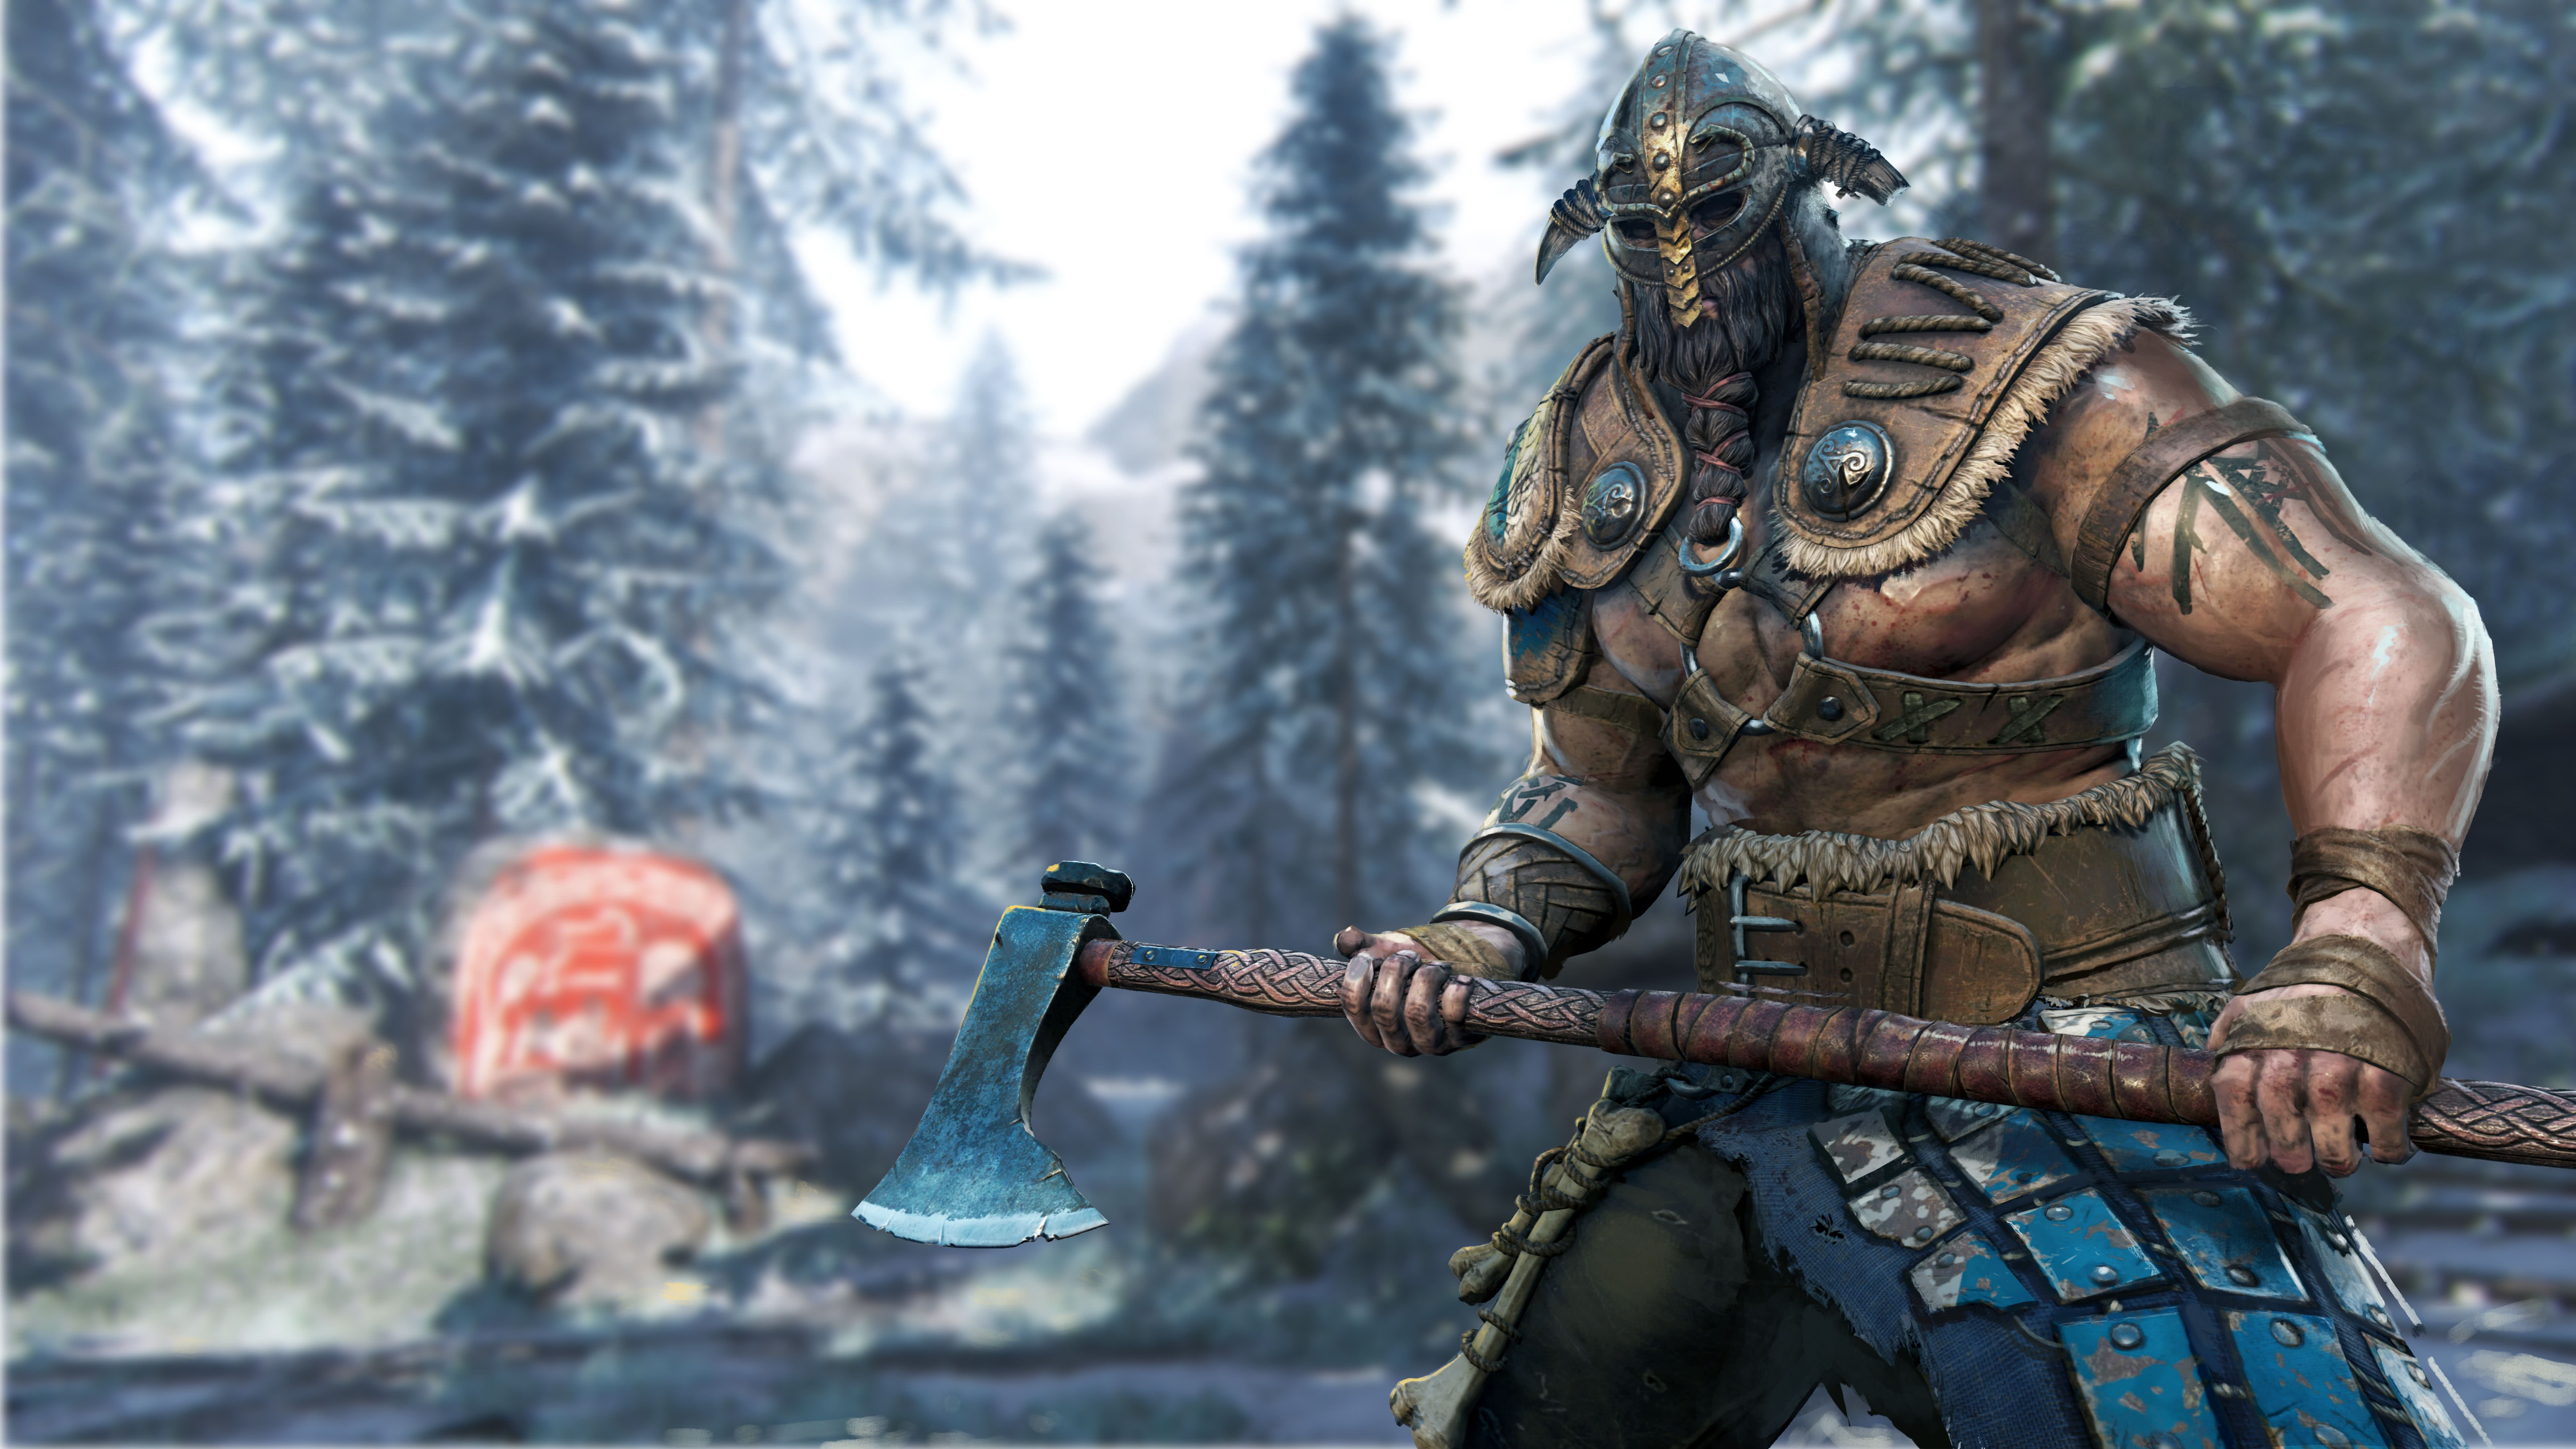 For Honor Viking Wallpapers Top Free For Honor Viking Backgrounds Wallpaperaccess